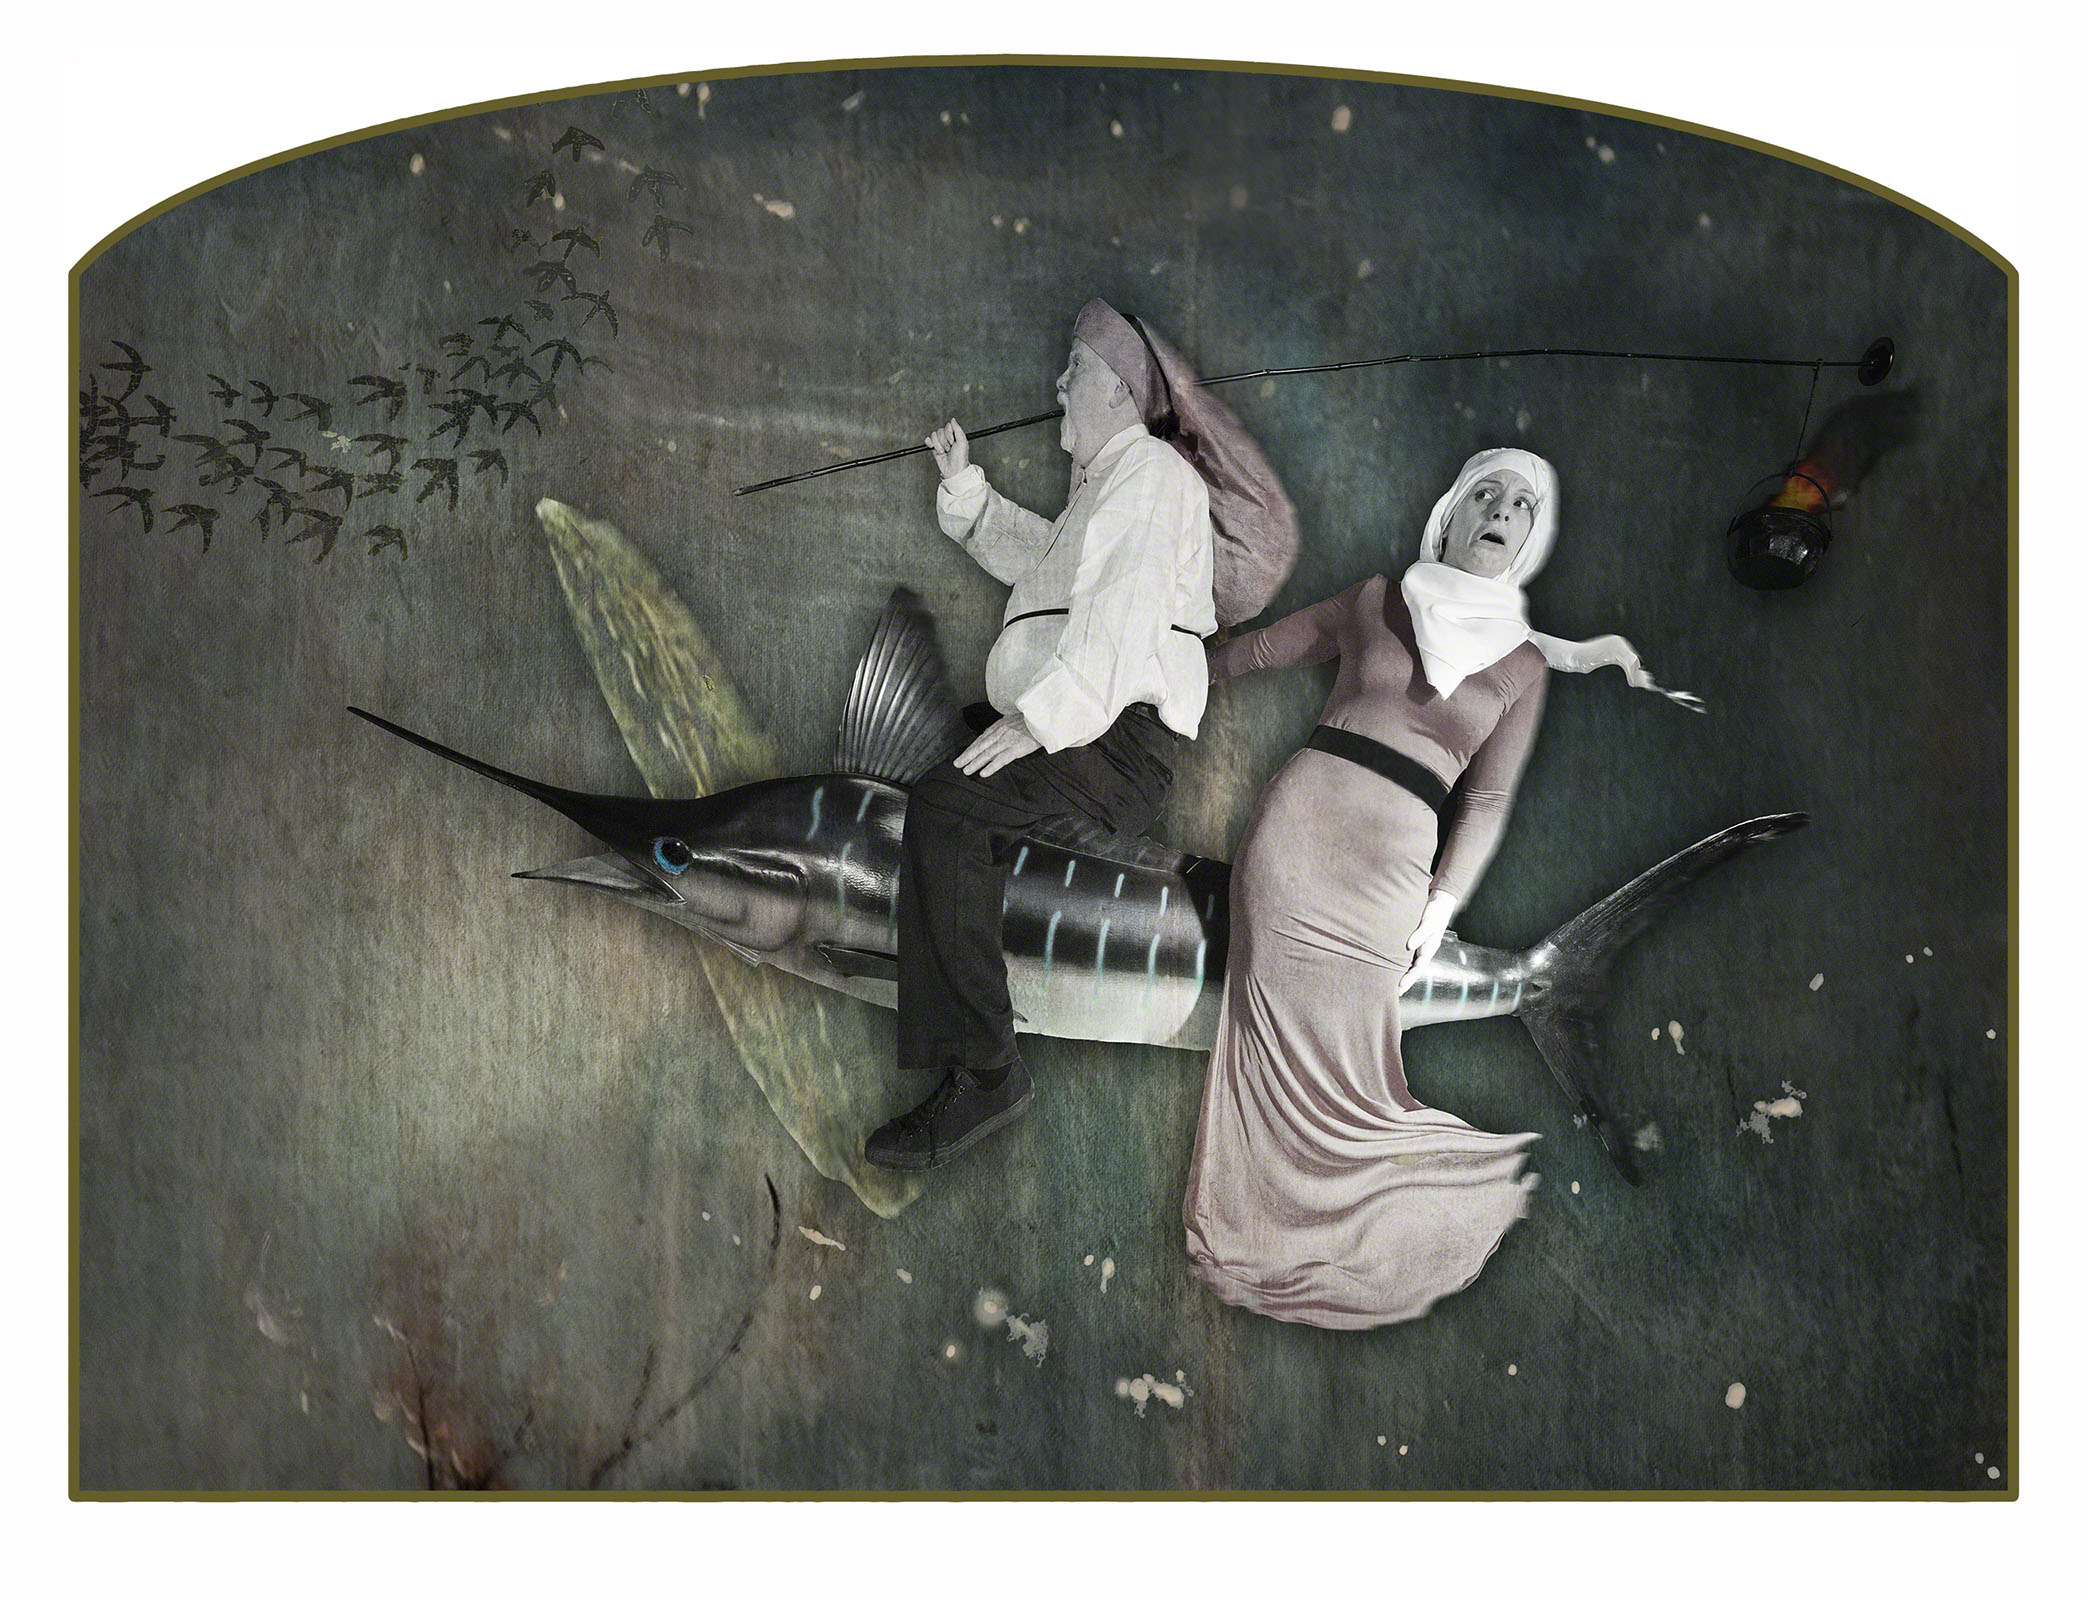 Bosch Redux 13.0 , Archival pigment print,26 x 22 inches, Limited Edition of 25